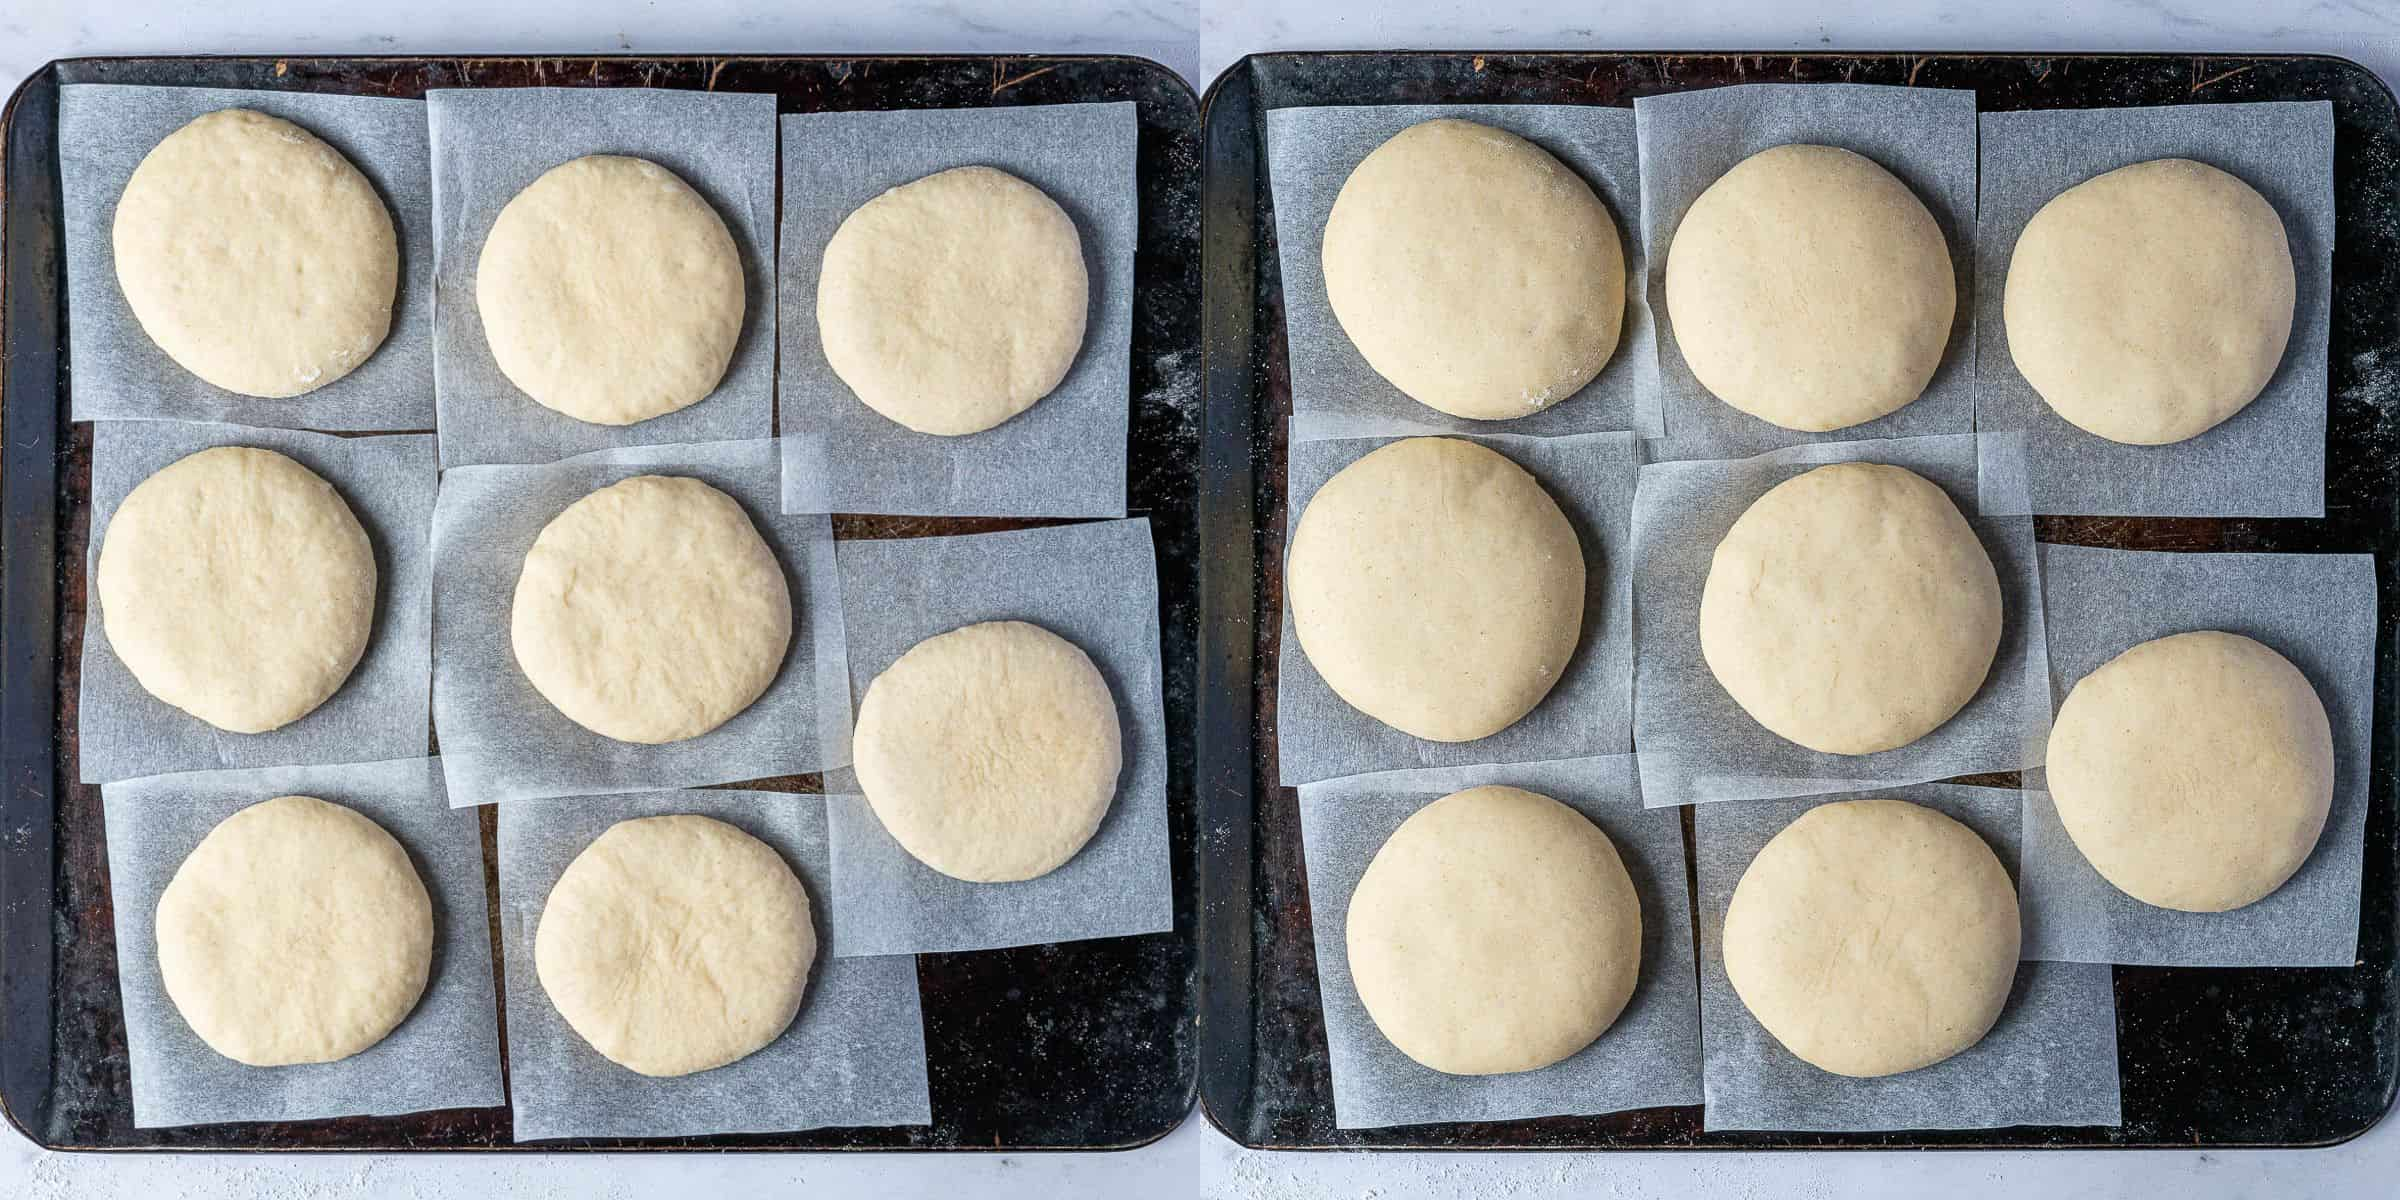 Step 7, a two image collage of the doughnuts before and after rising.